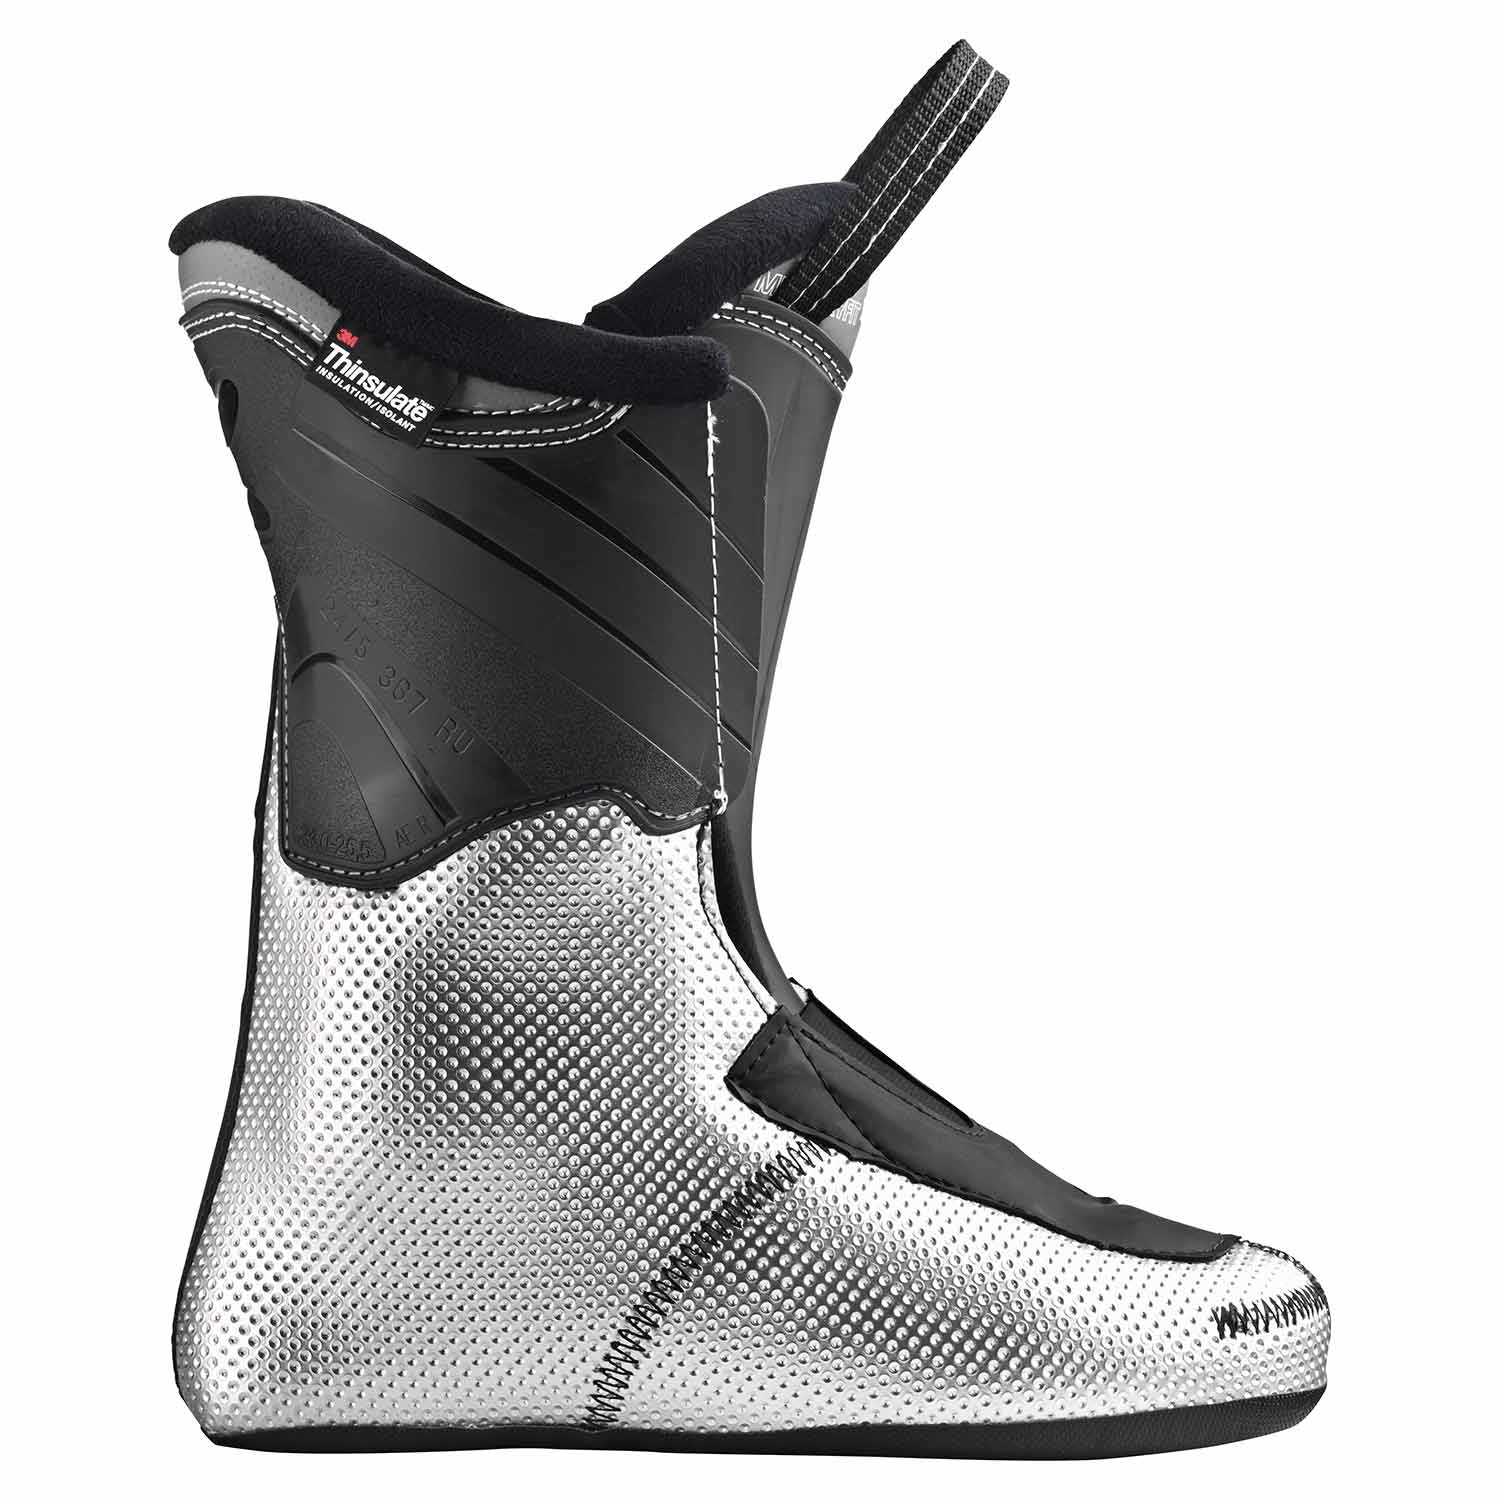 Atomic Hawx Magna 105 S Ski Boot Black/Anthracite 2020